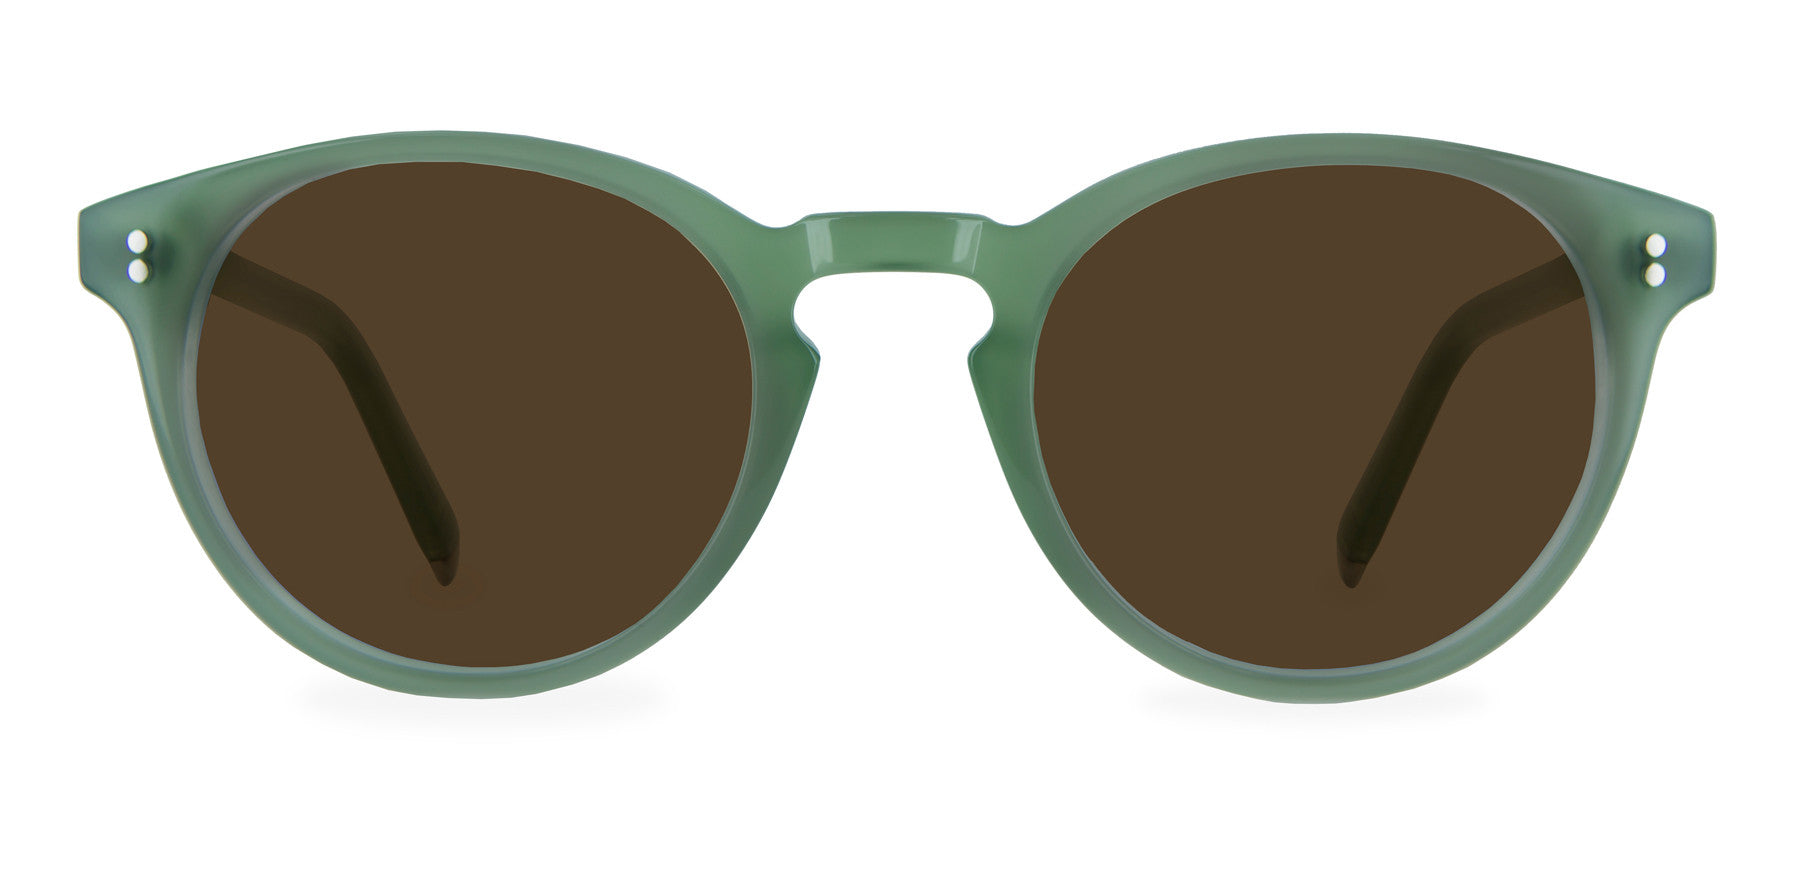 Khaki Green with Bronze Lenses